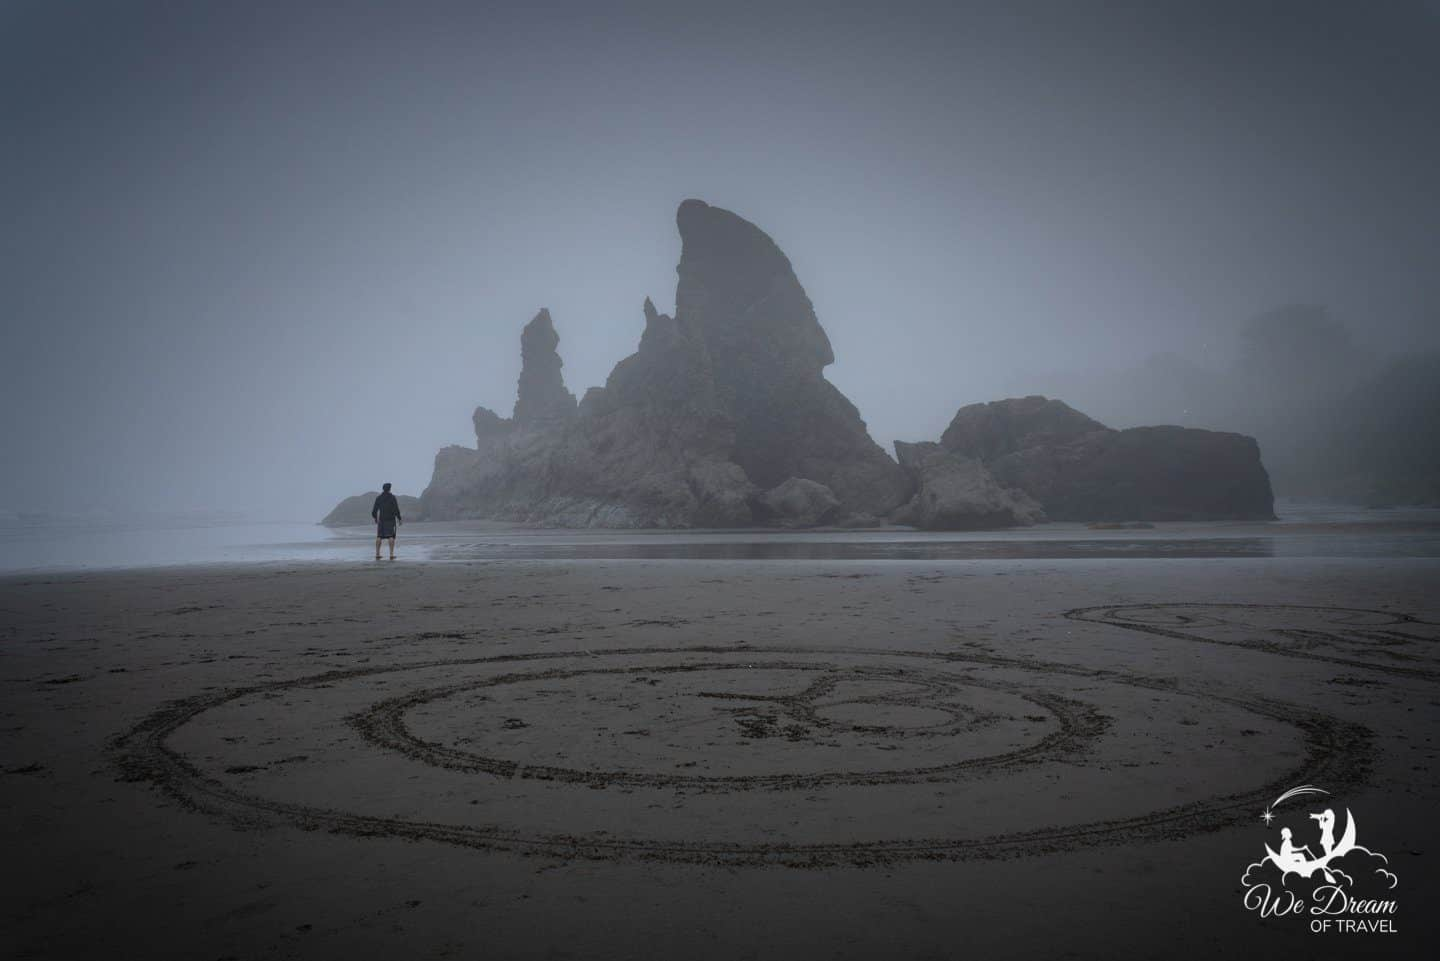 Sand art gives this moody photograph an otherworldly feel